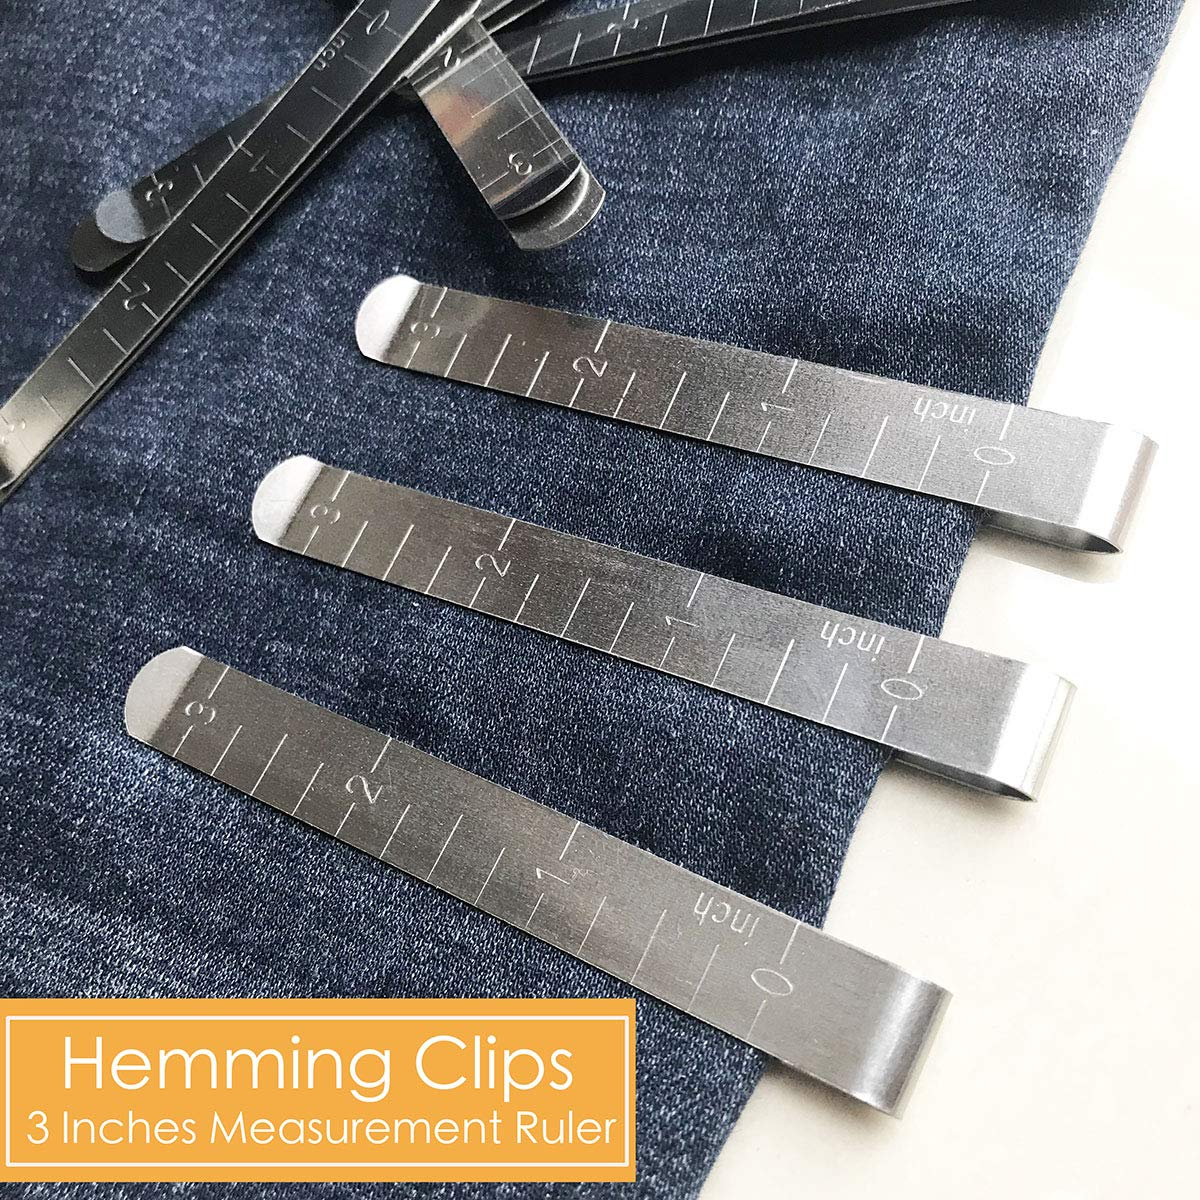 20 Pieces Hemming Clips Bulk 3 Inches Measurement Ruler Sewing Clips for Sewing Pants,Curtains and Other Sewing Project